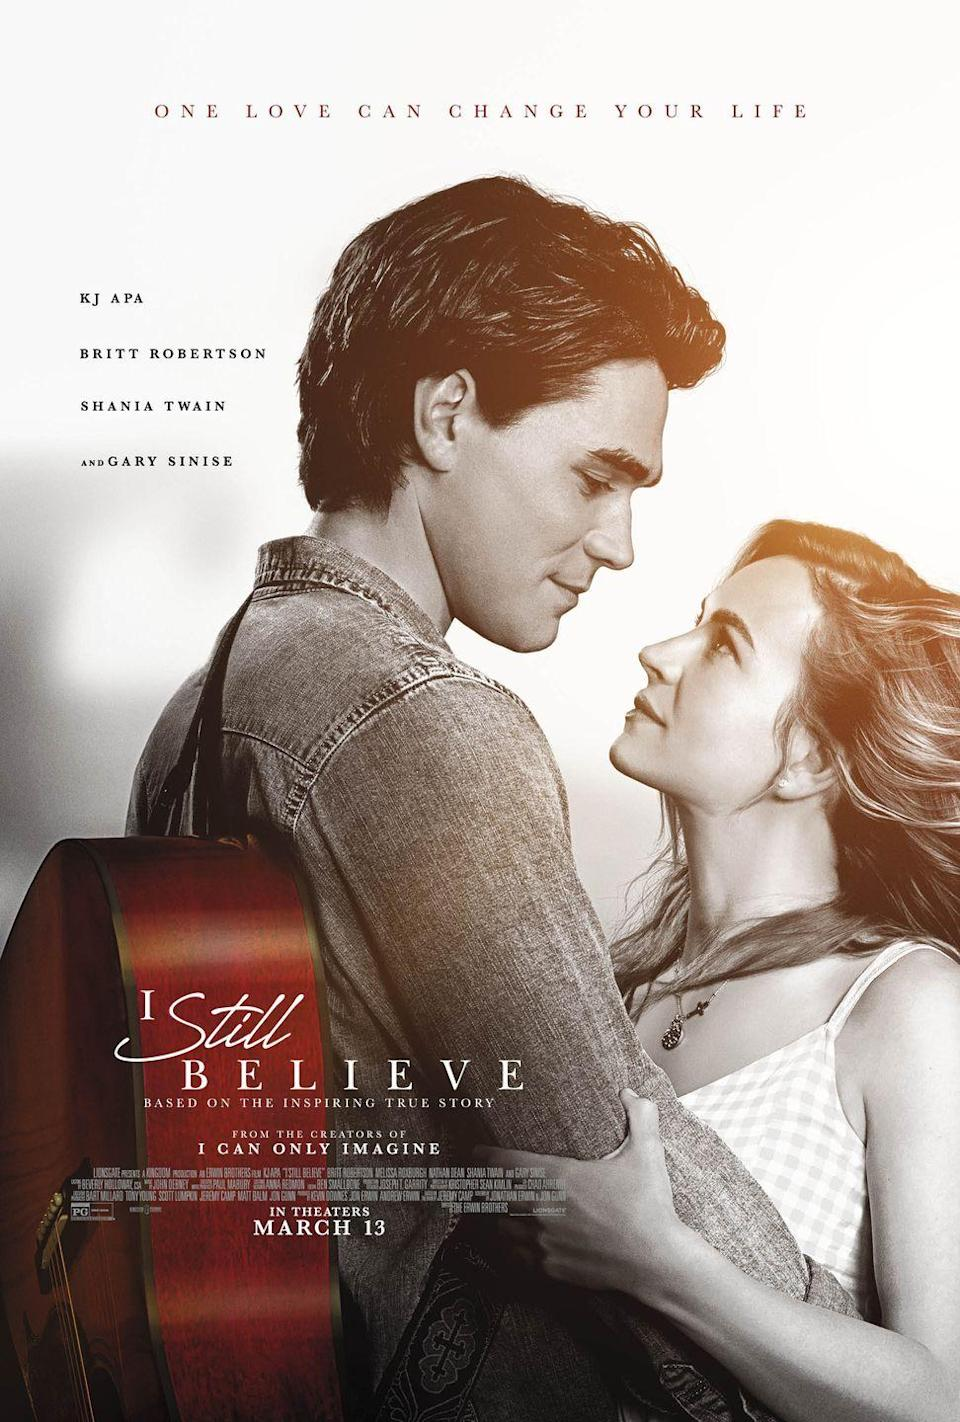 """<p>The only thing more tear-jerking than the plot of this movie is that it's based on a true love story. A Christian singer-songwriter is forced to accept the cruel reality that his wife is dying from cancer, causing him to question his faith and accept a new reality without the love of his life.</p><p><a class=""""link rapid-noclick-resp"""" href=""""https://go.redirectingat.com?id=74968X1596630&url=https%3A%2F%2Fwww.vudu.com%2Fcontent%2Fmovies%2Fdetails%2FI-Still-Believe%2F1361792&sref=https%3A%2F%2Fwww.redbookmag.com%2Flife%2Fg36572054%2Fbest-movies-based-on-true-storie1%2F"""" rel=""""nofollow noopener"""" target=""""_blank"""" data-ylk=""""slk:Watch Here"""">Watch Here</a></p>"""